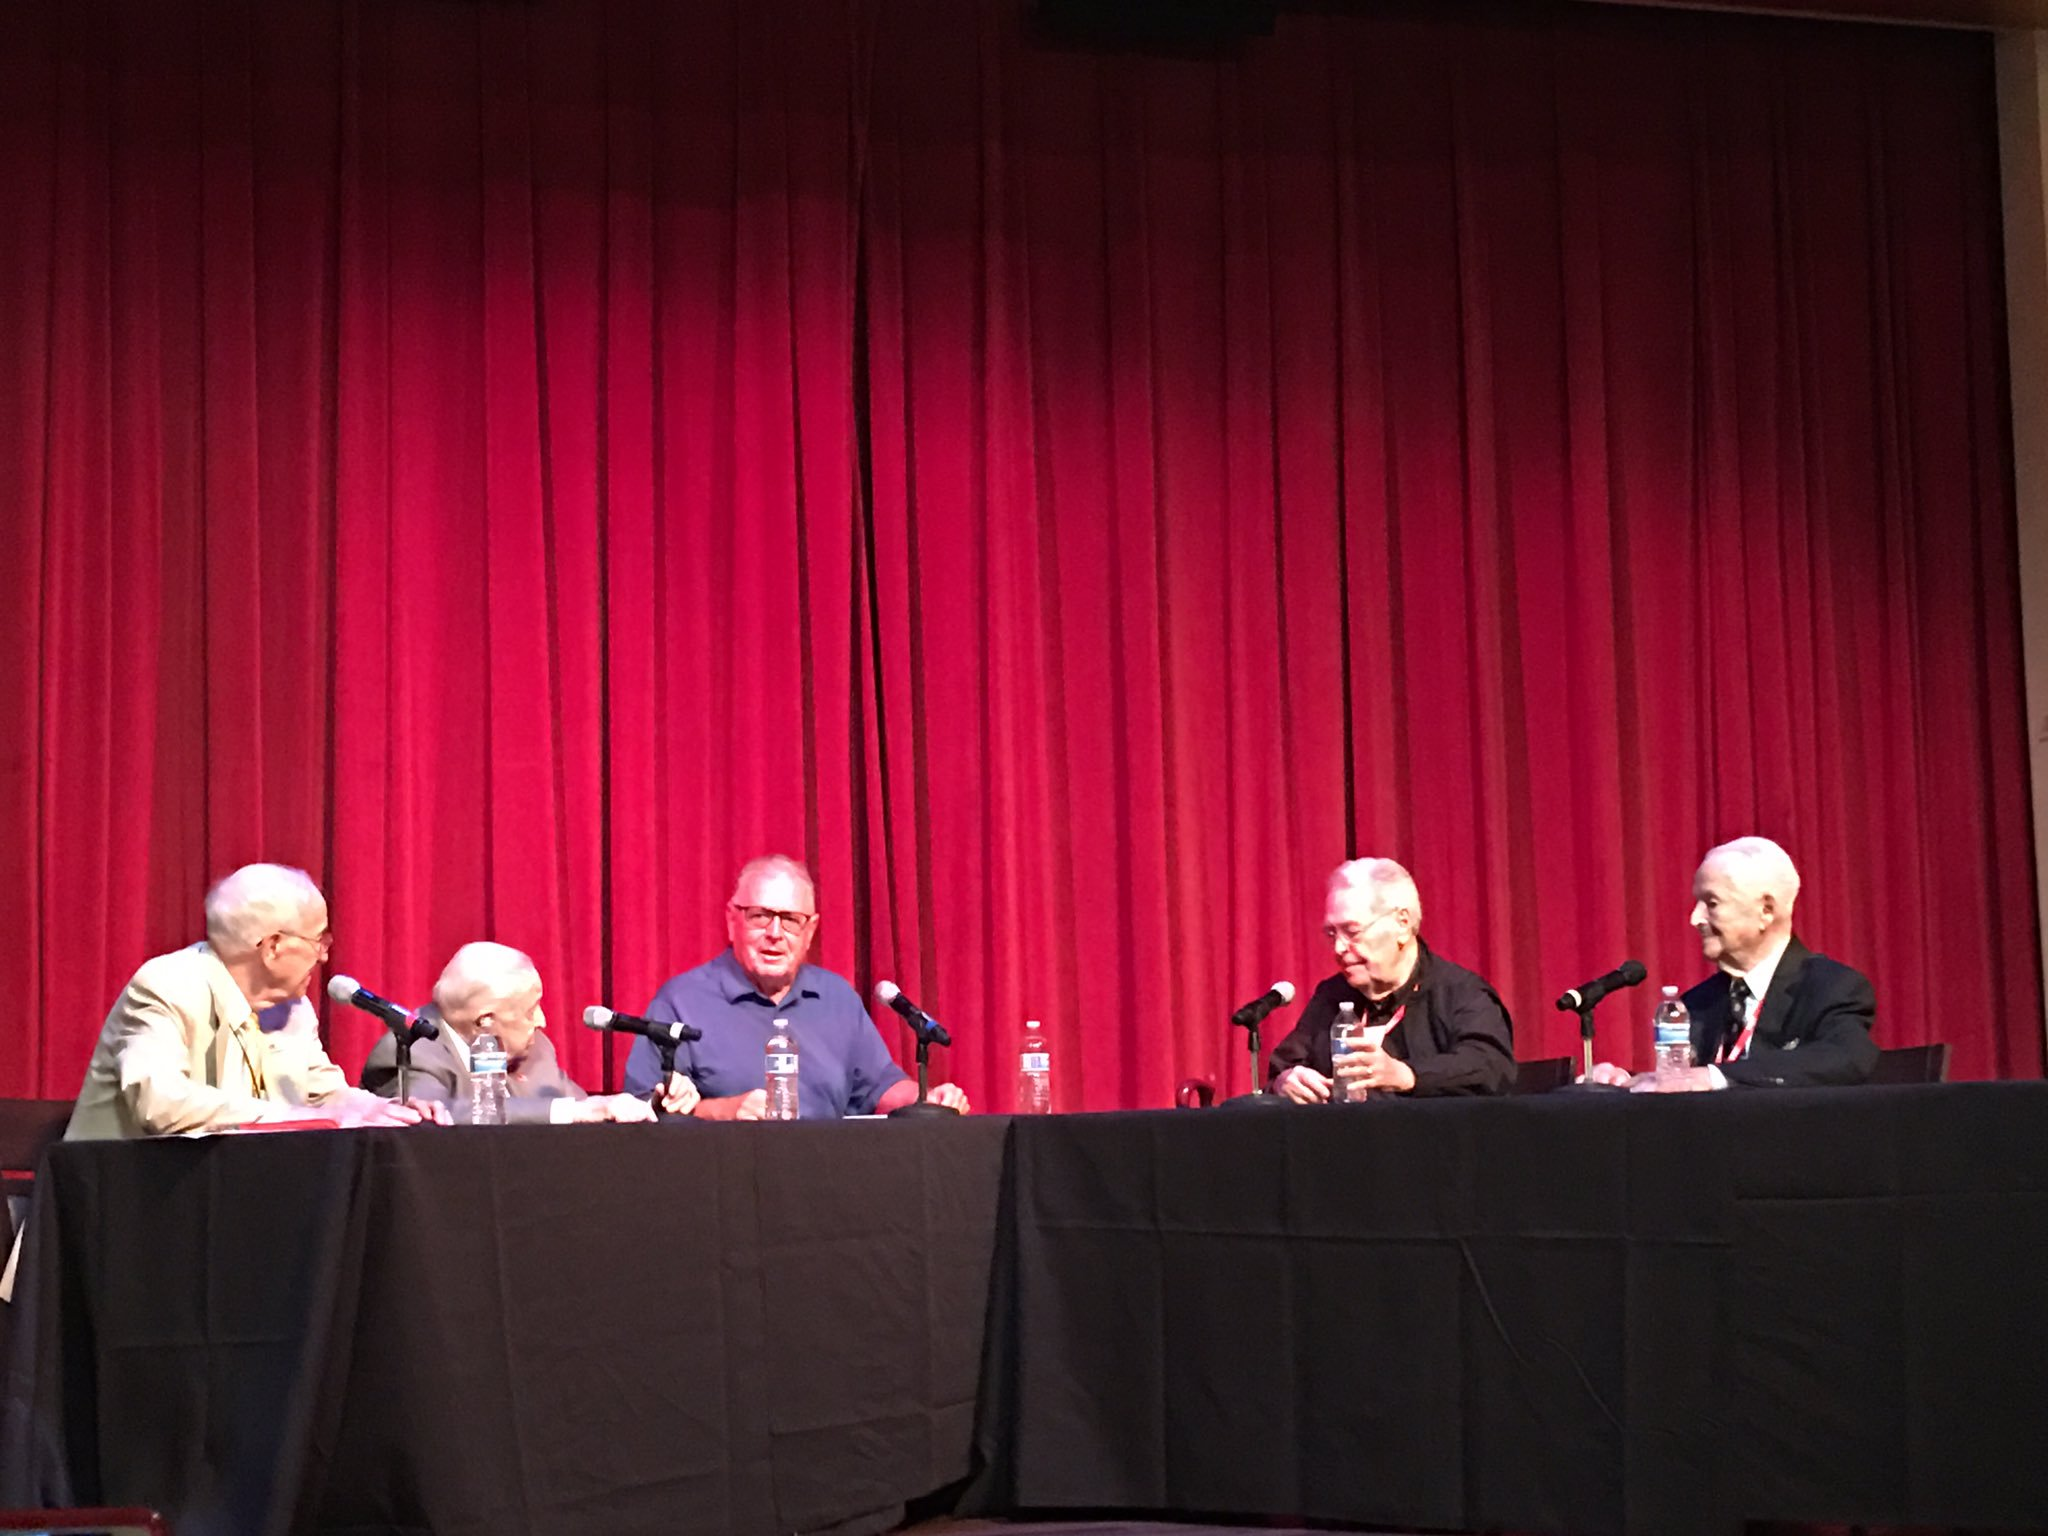 Dr. Donald Miller and a panel of World War II veterans at the National World War II Museum